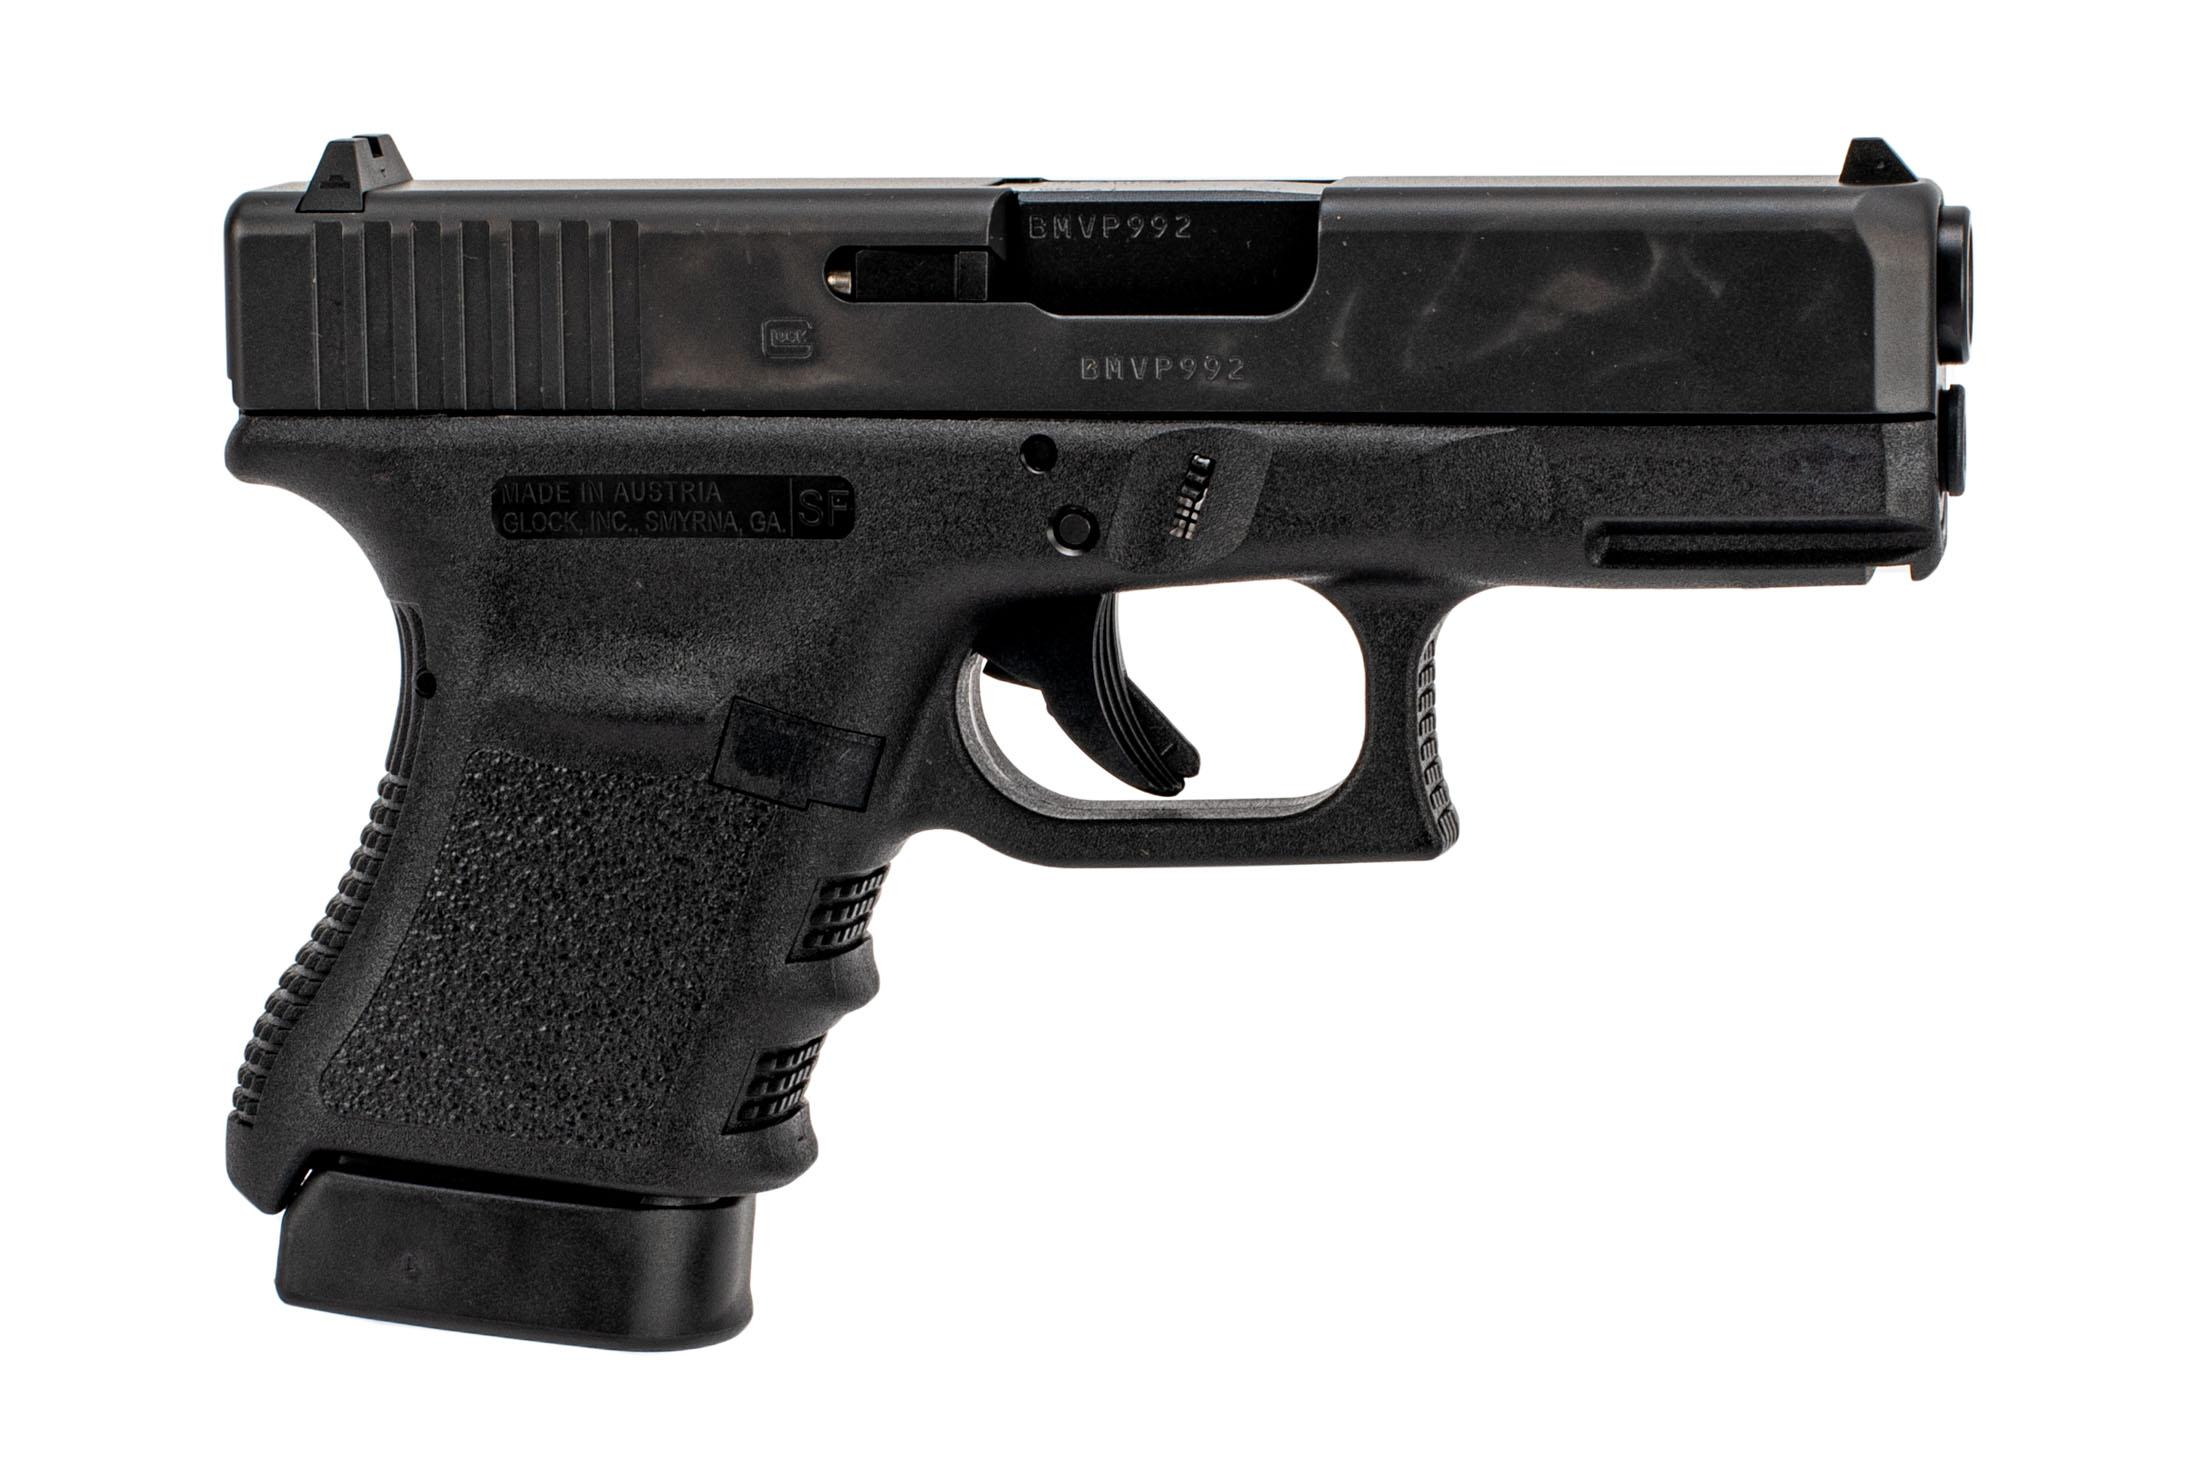 Glock G30s sub-compact .45 ACP pistol with 10-round magazines